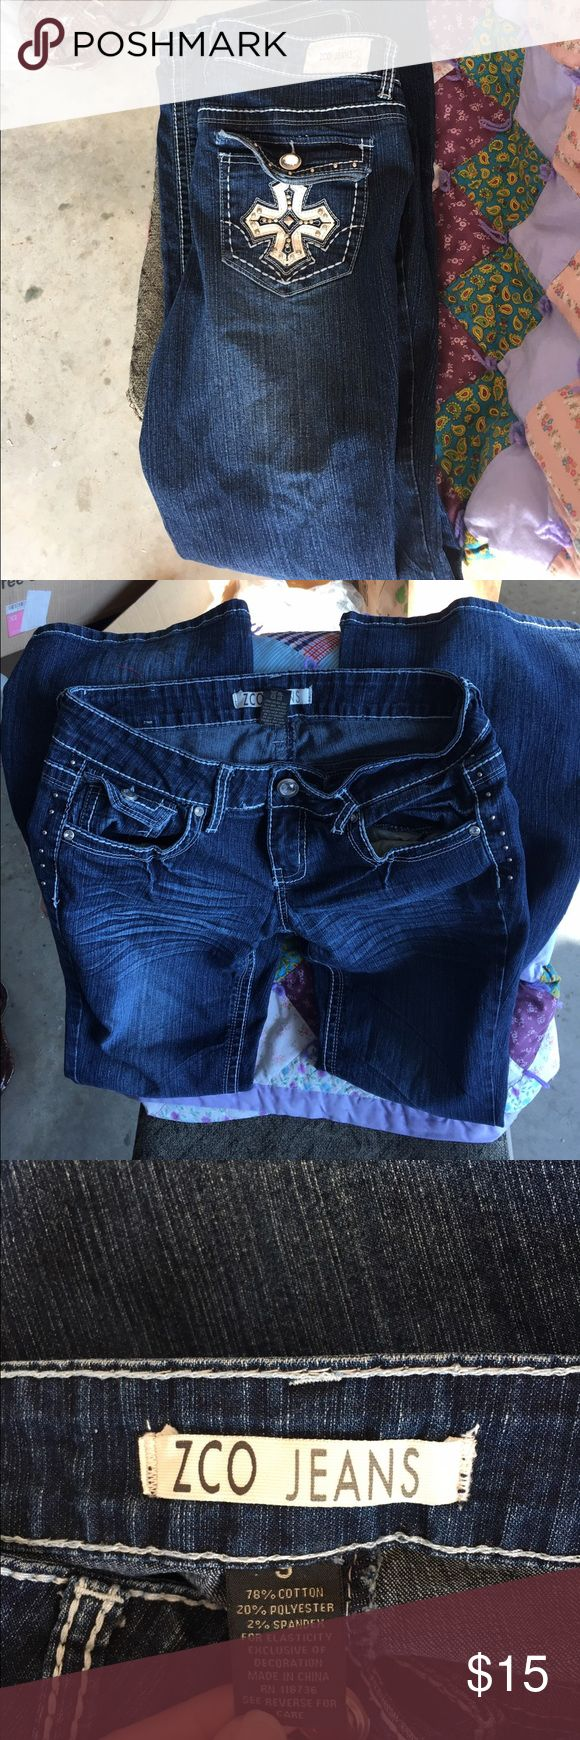 ZCO Jeans Practically brand new ZCO jeans with designs on back pockets. Excellent condition, maybe worn twice. They are too big for me now. ZCO Jeans Boot Cut